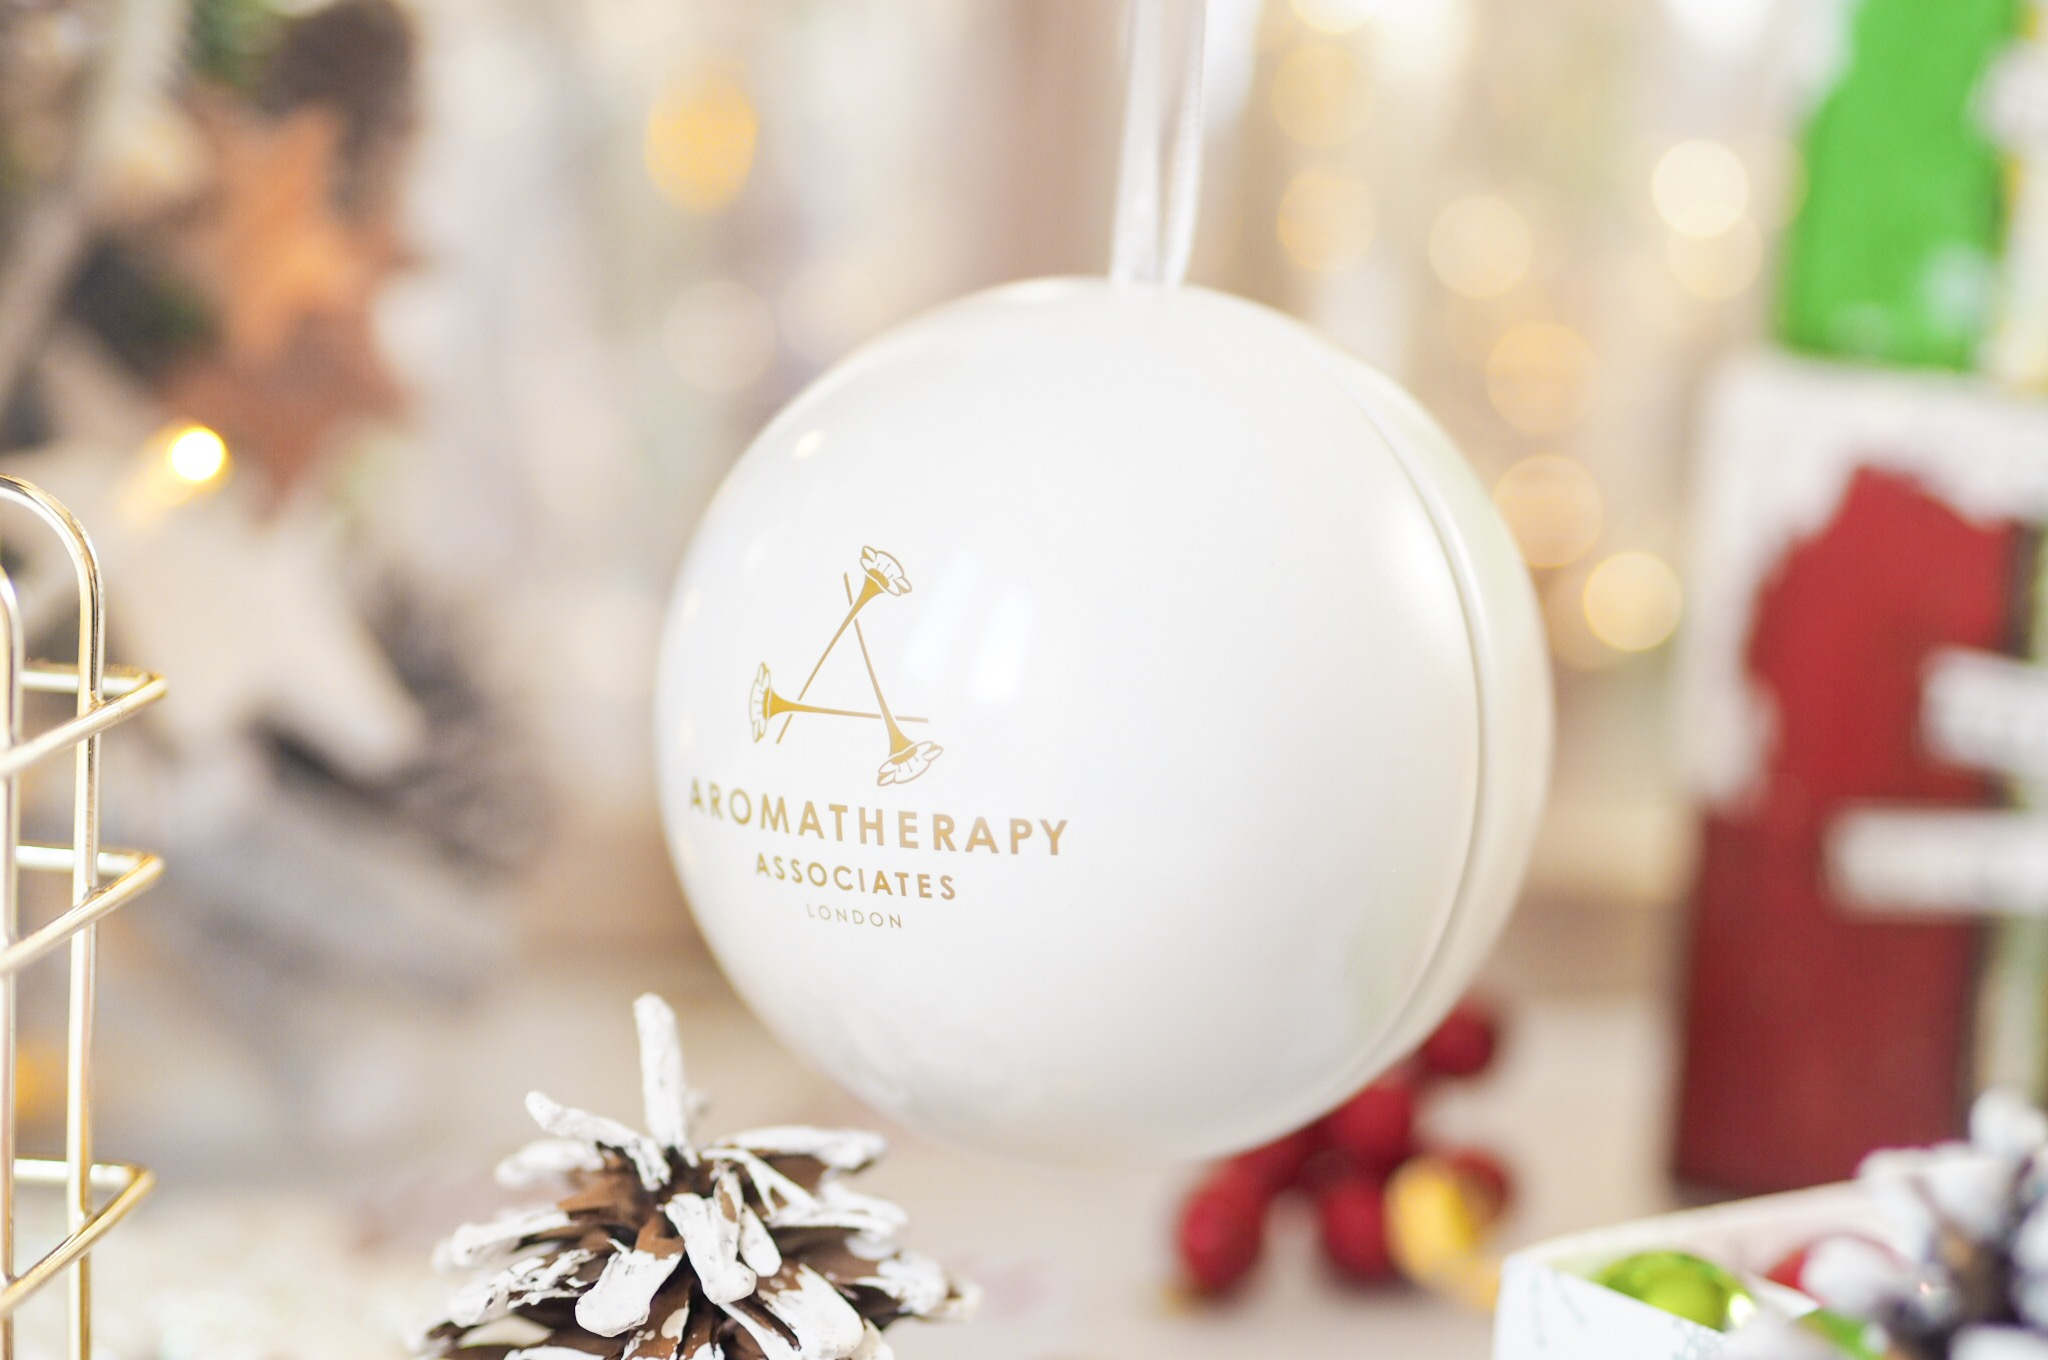 Aromatherapy Associates Pearl of Wisdom Bauble